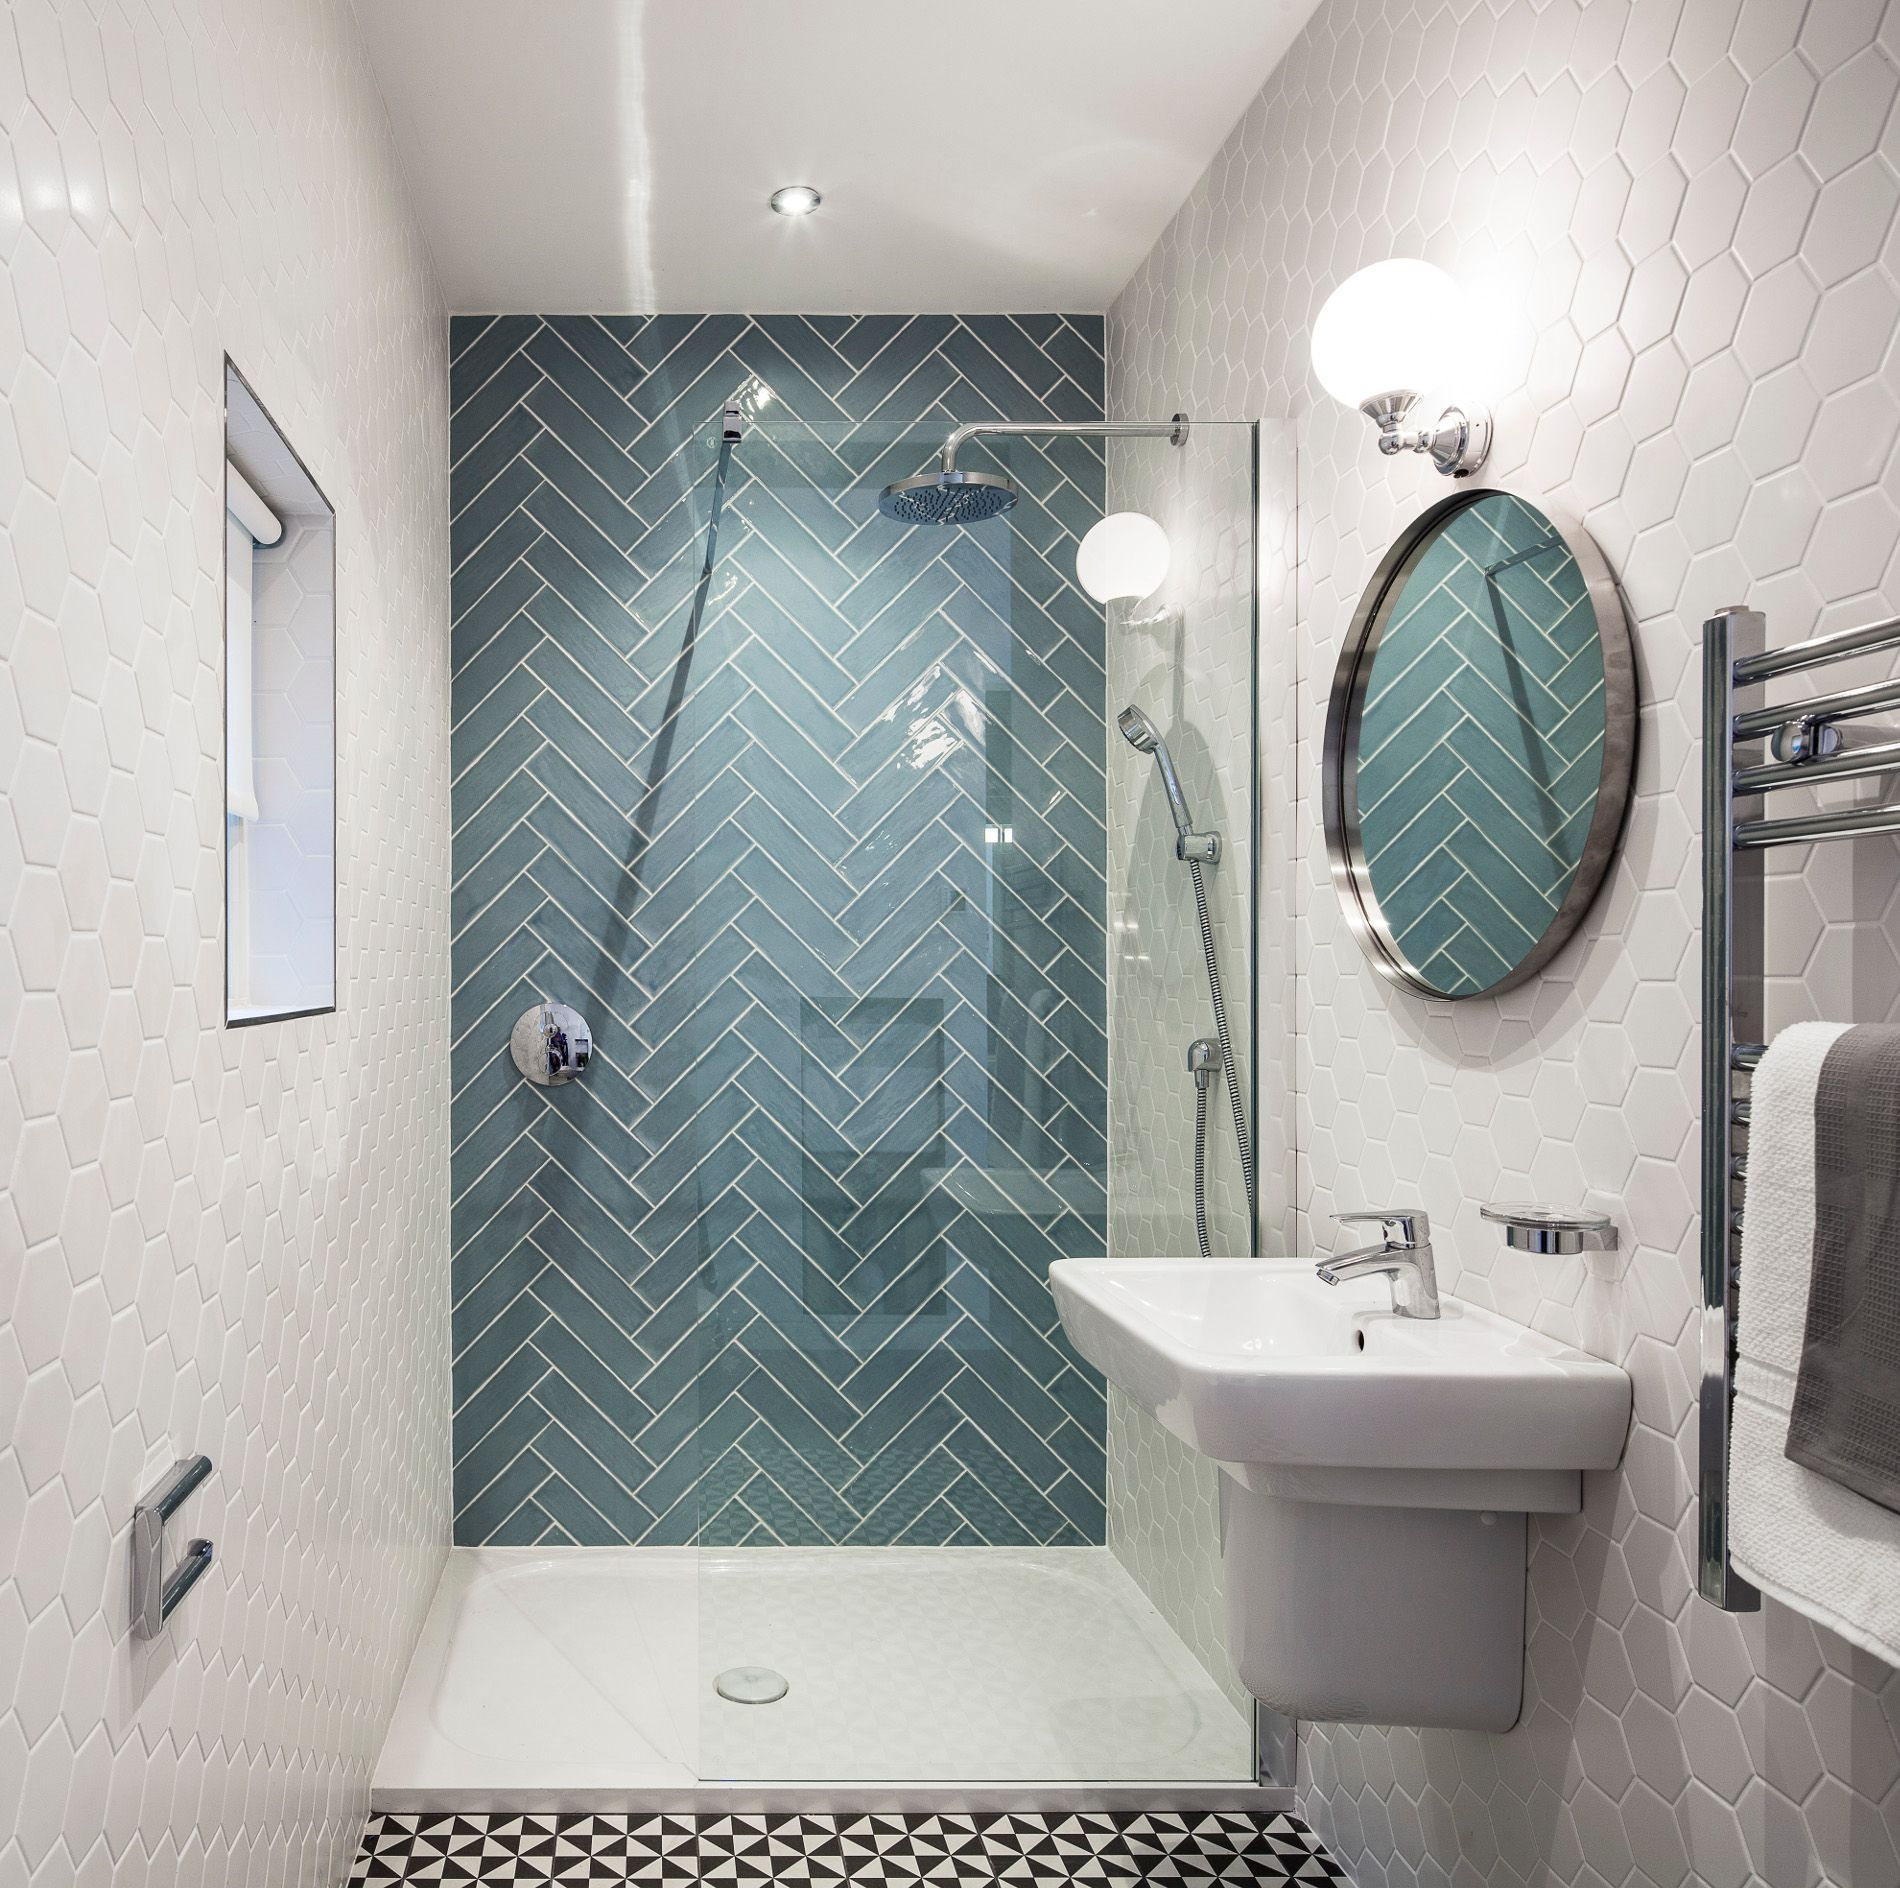 combining different tiles in bathroom | Bathroom design | Pinterest ...